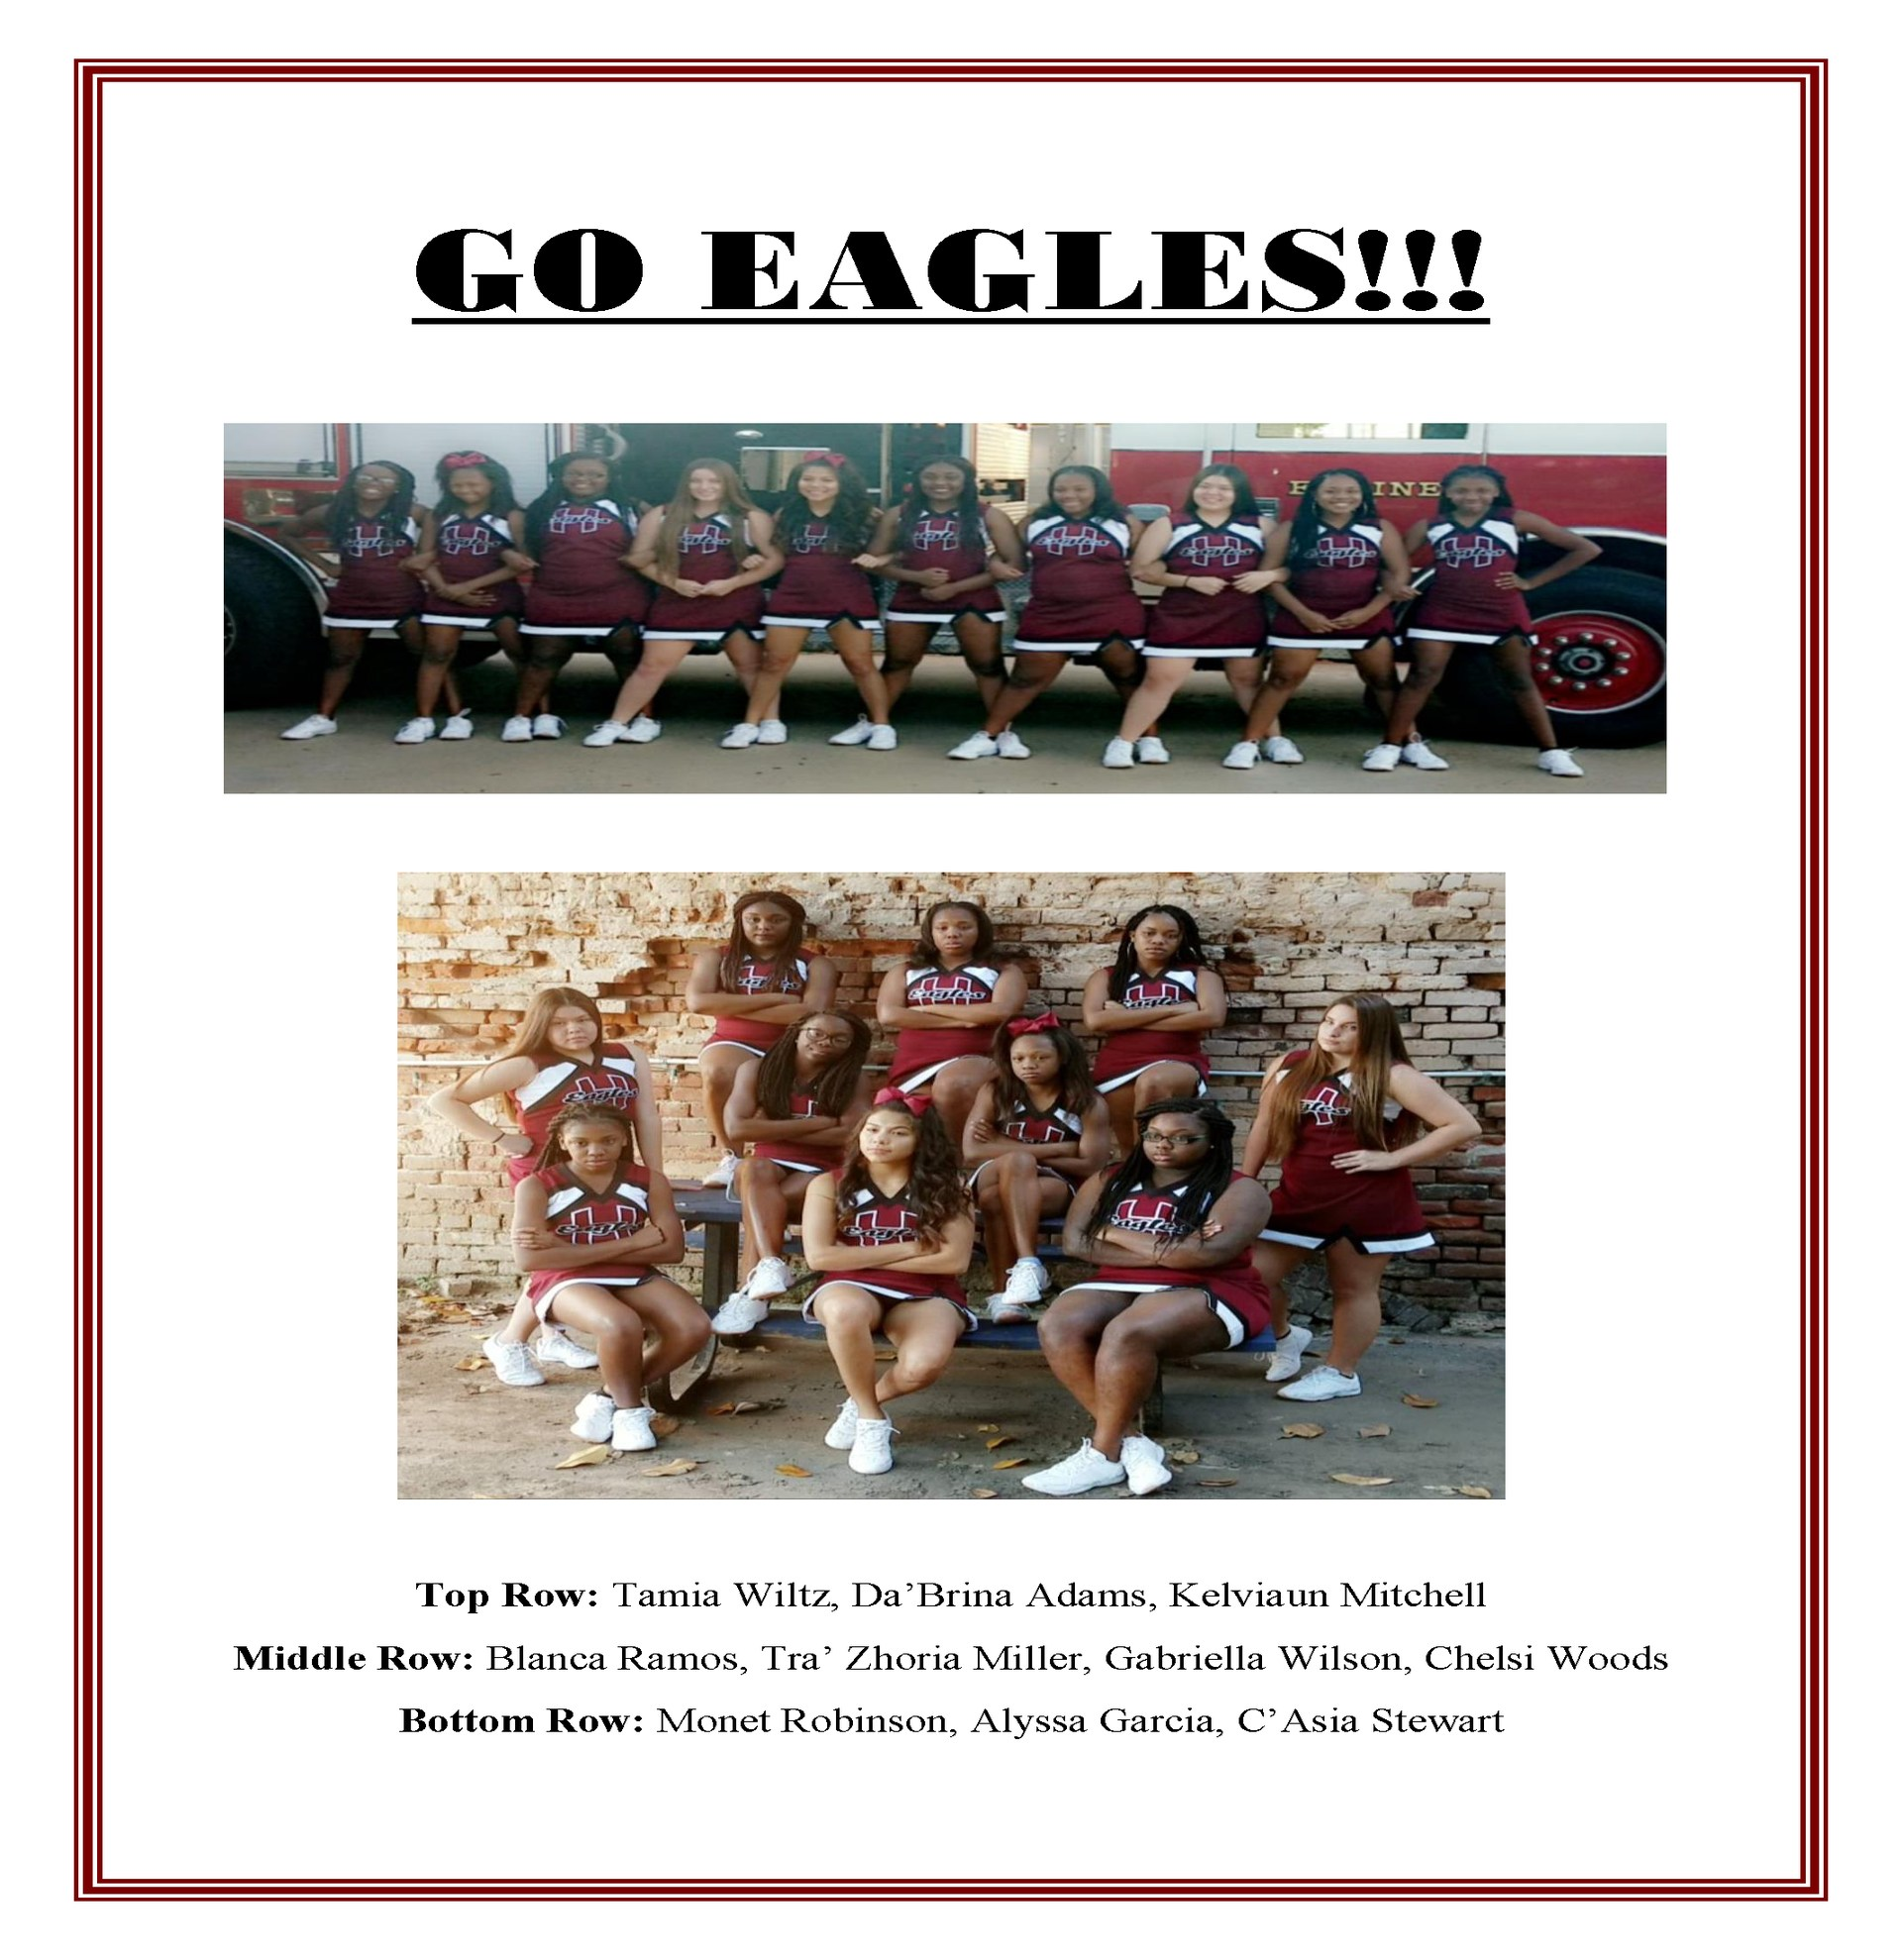 Hearne 2017-18 Cheerleaders